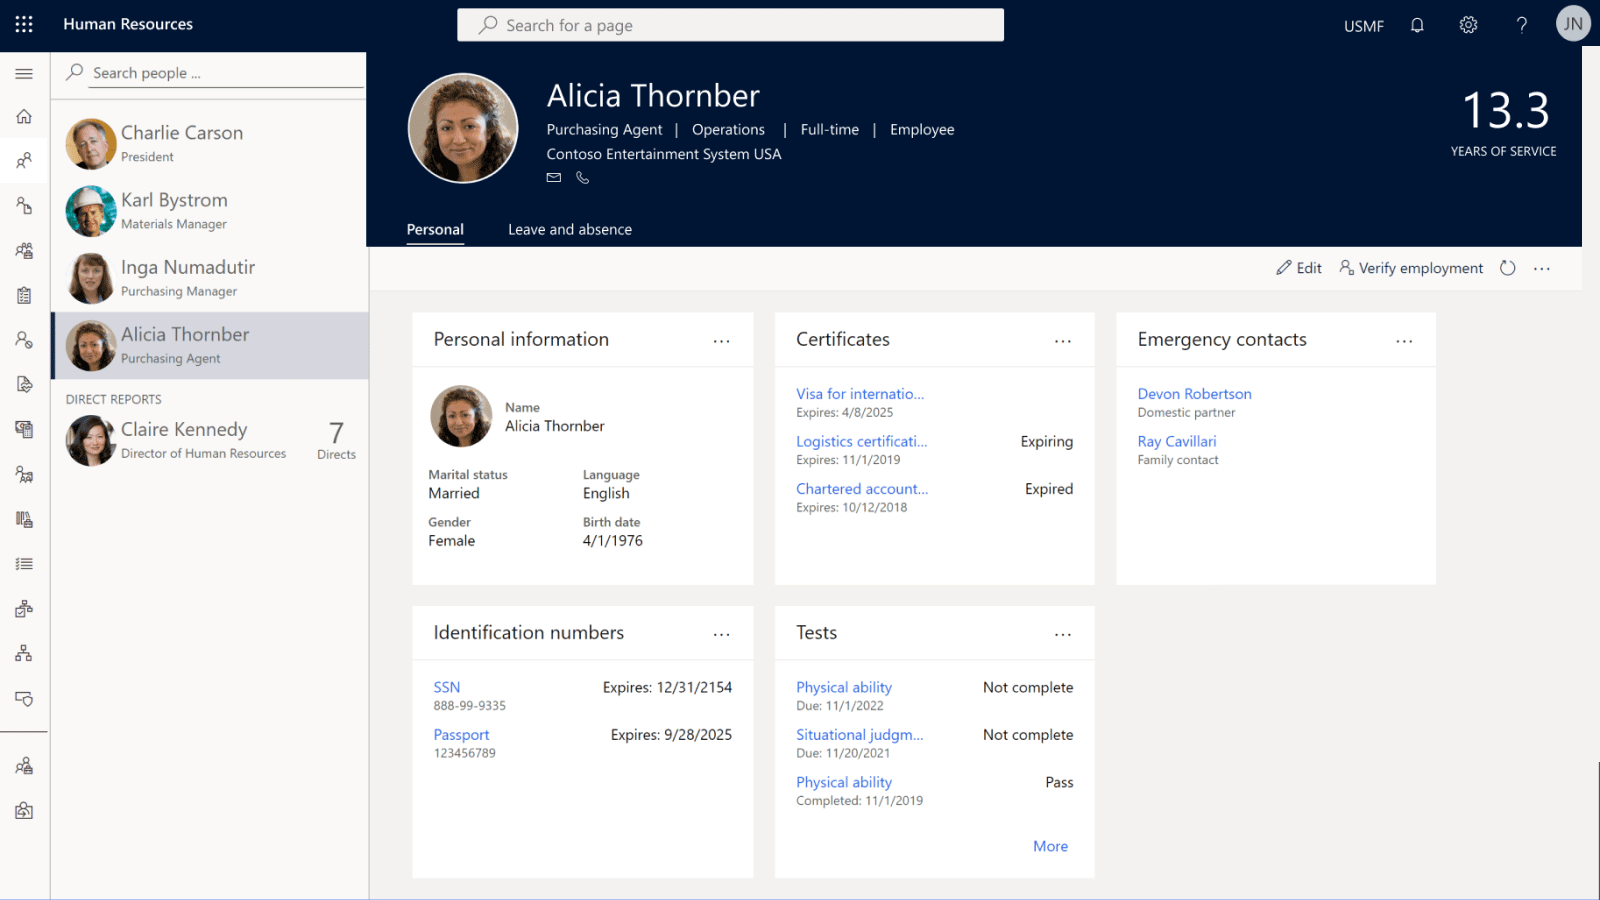 Dynamics 365 Human Resources 視覺化